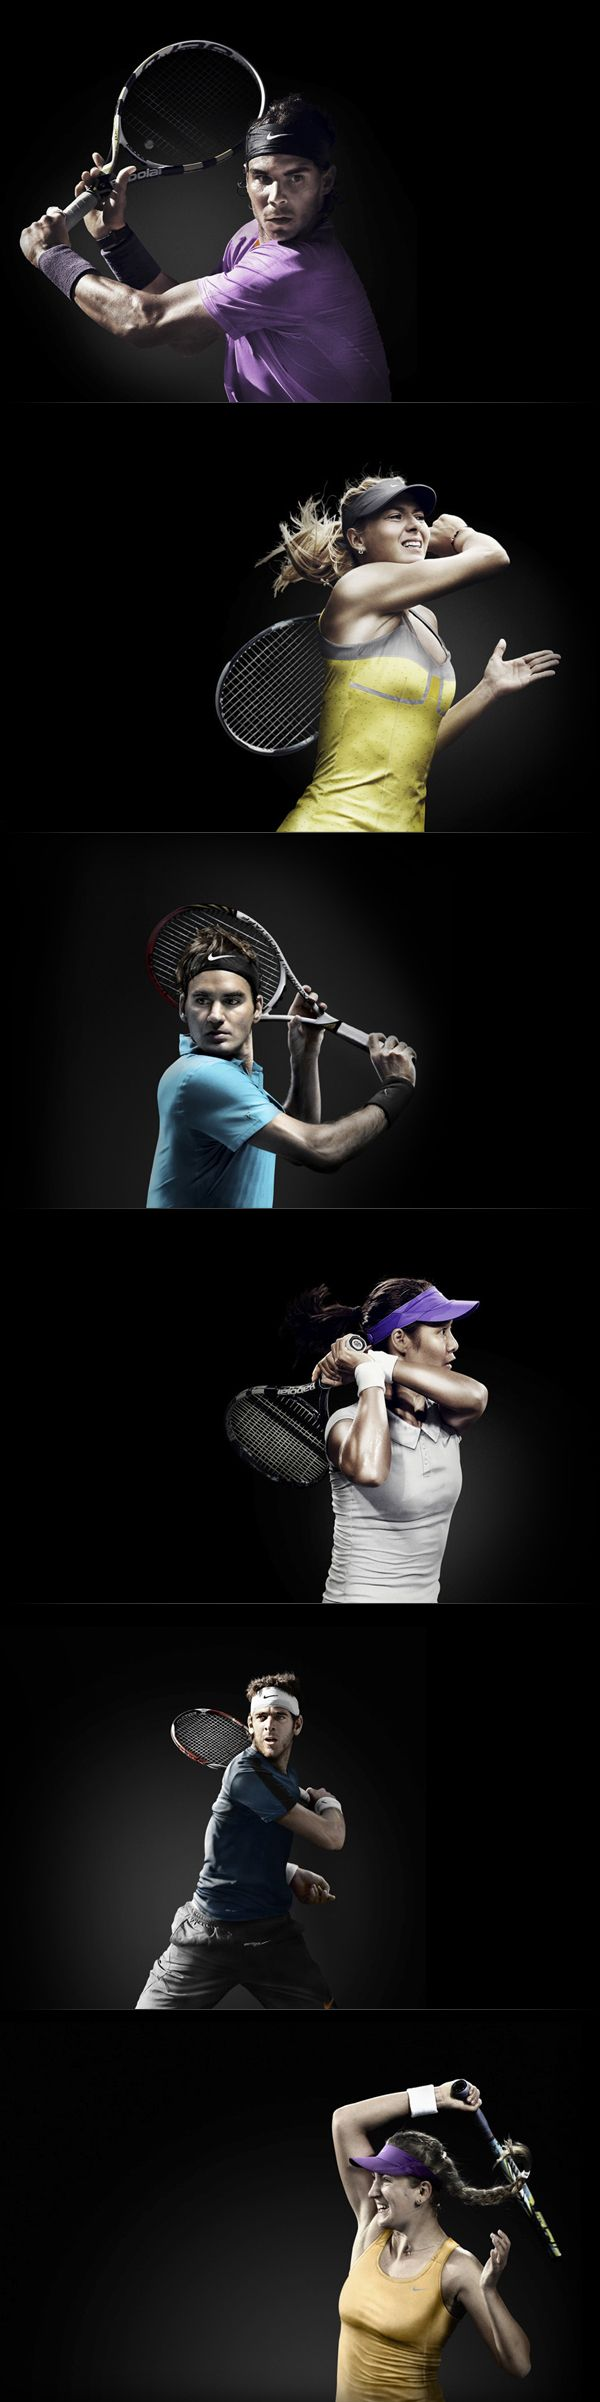 Nike Tennis 2013 by Christopher Eckel